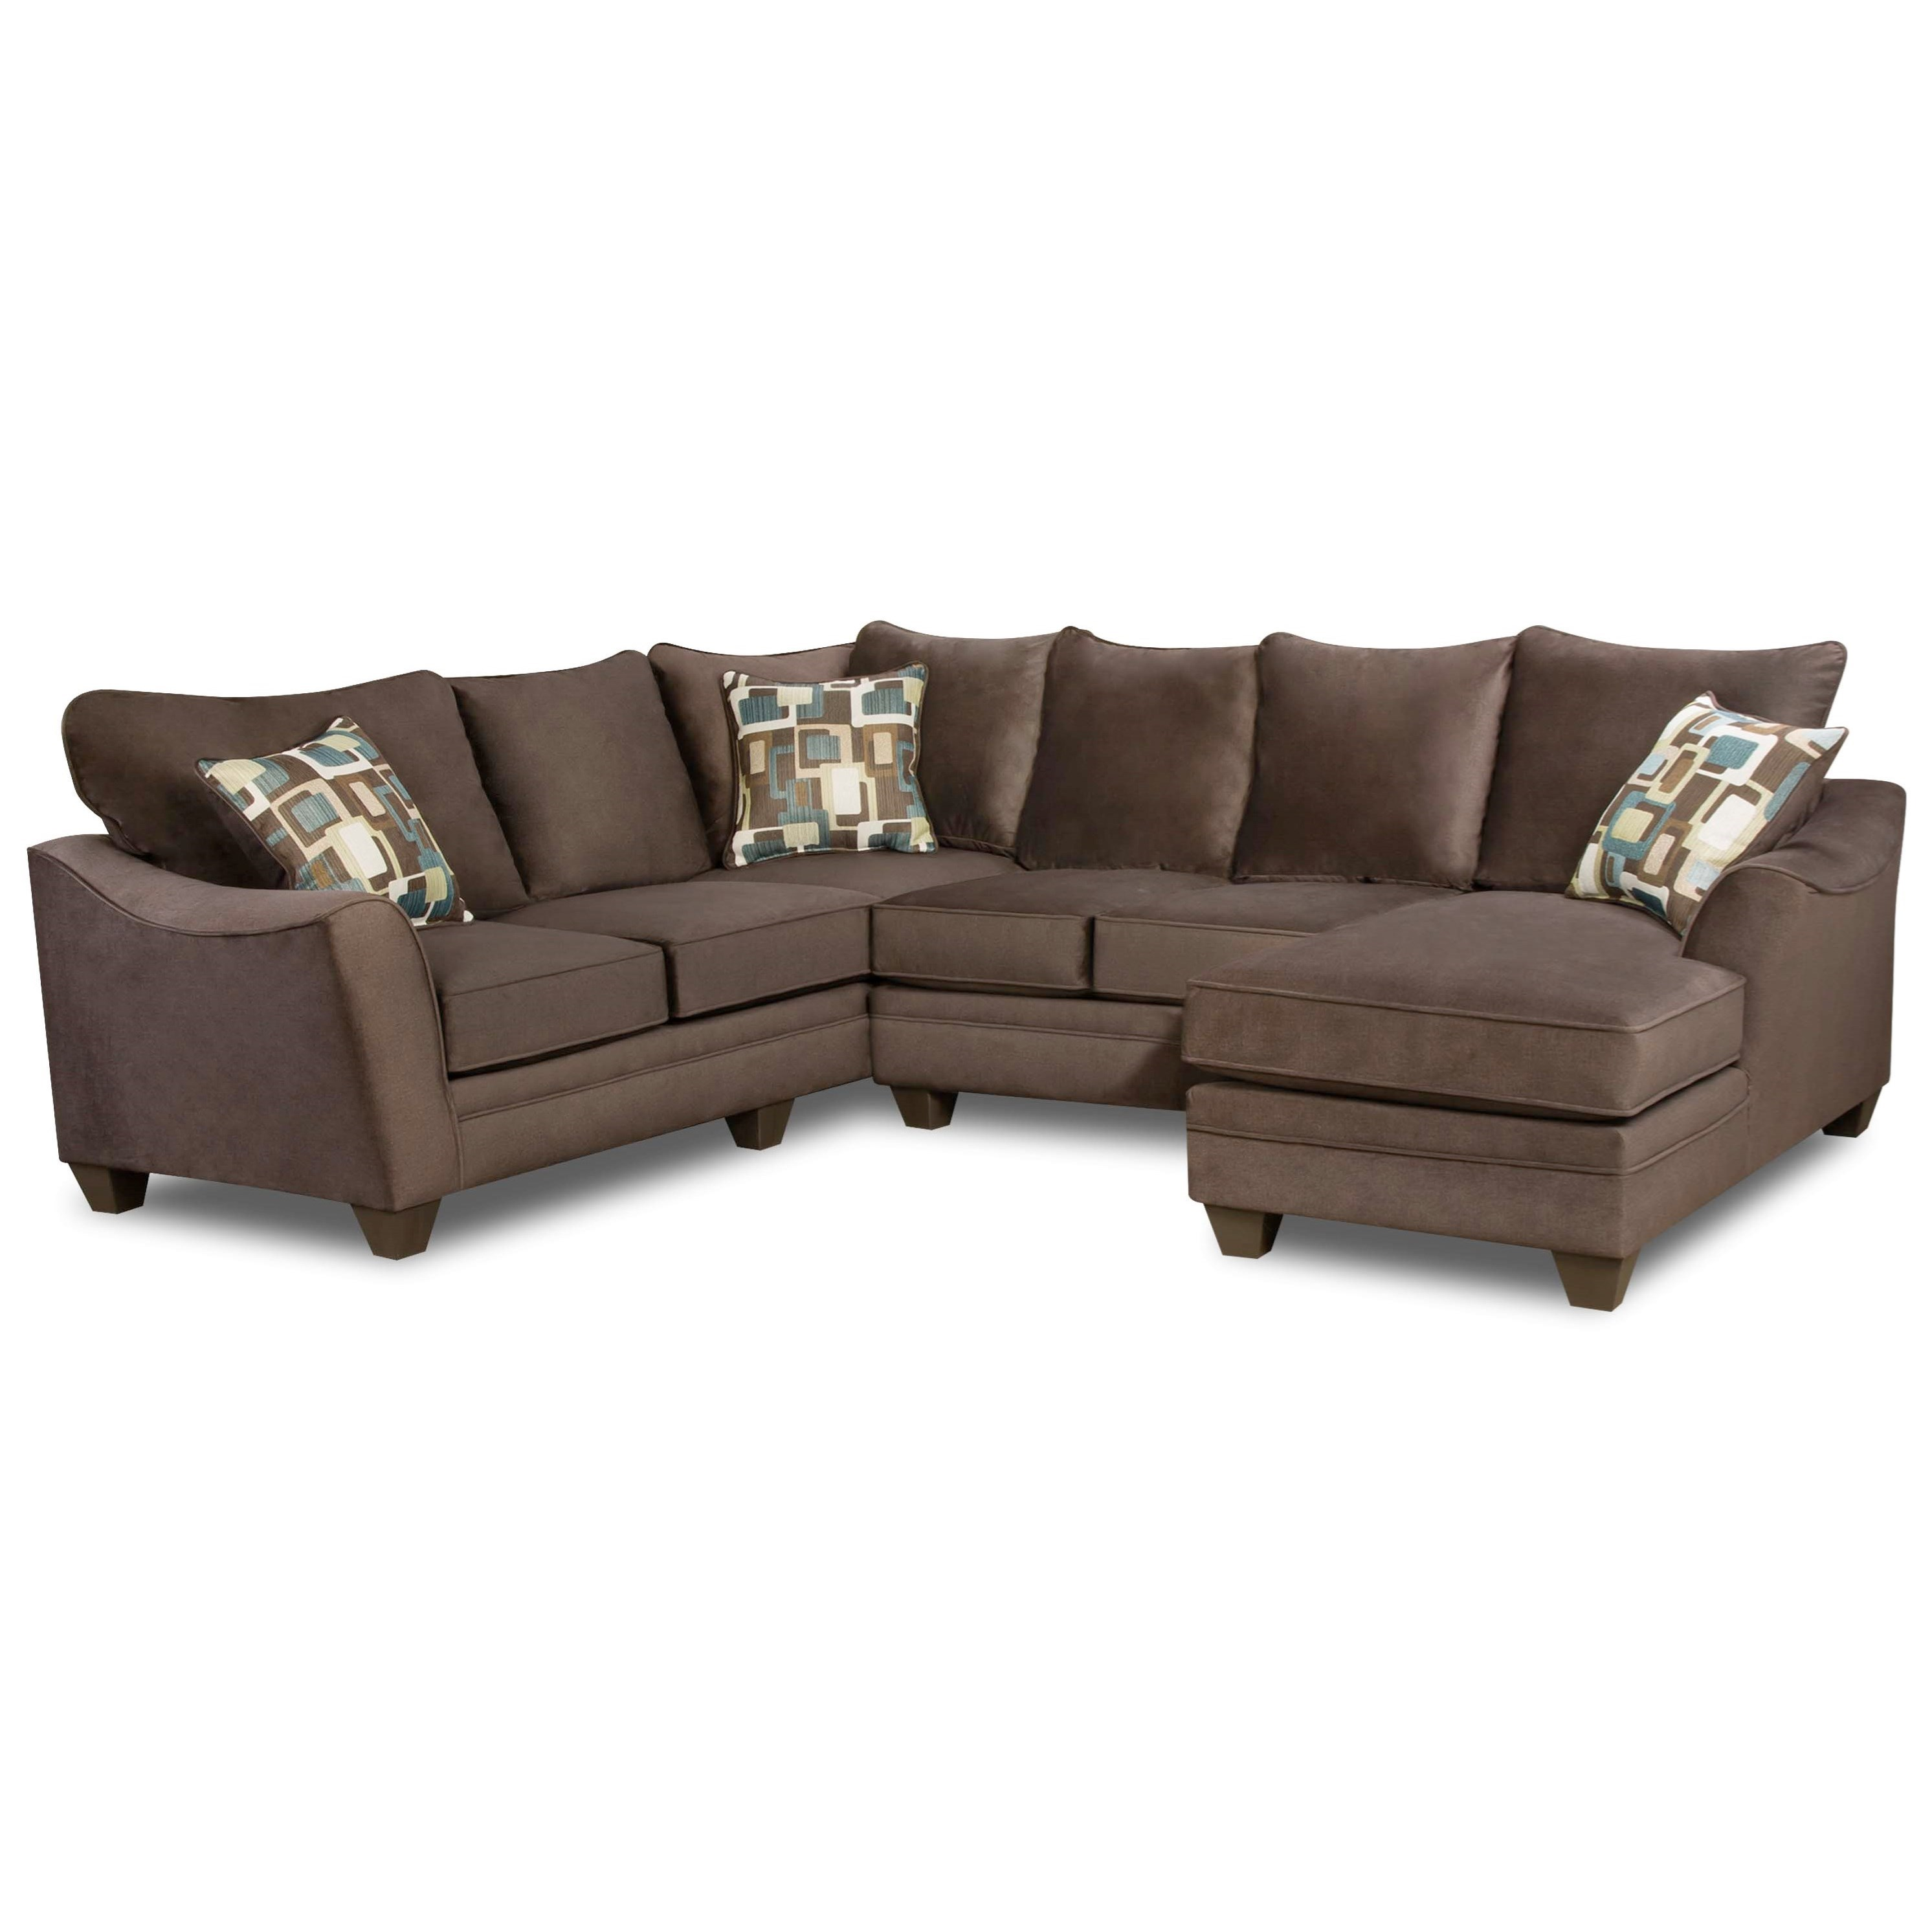 American Furniture 3810 Sectional Sofa with 5 Seats - Item Number: 3810+22+13-4041